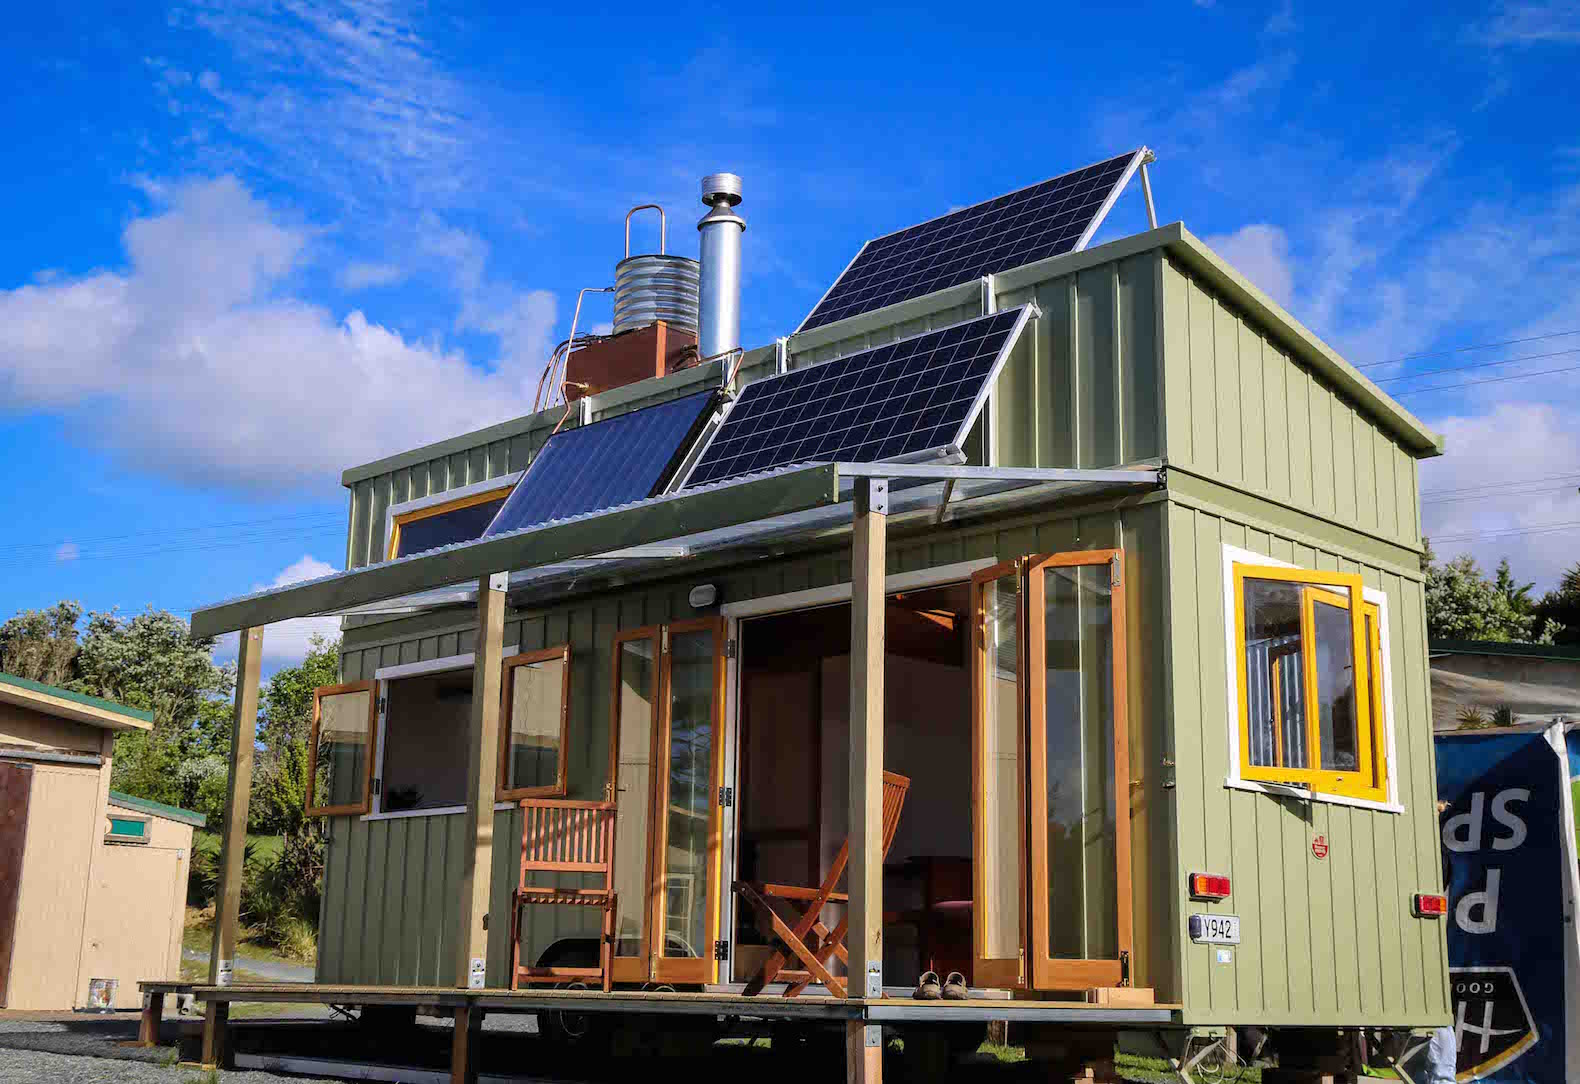 Off grid home inhabitat green design innovation for Off the grid home designs